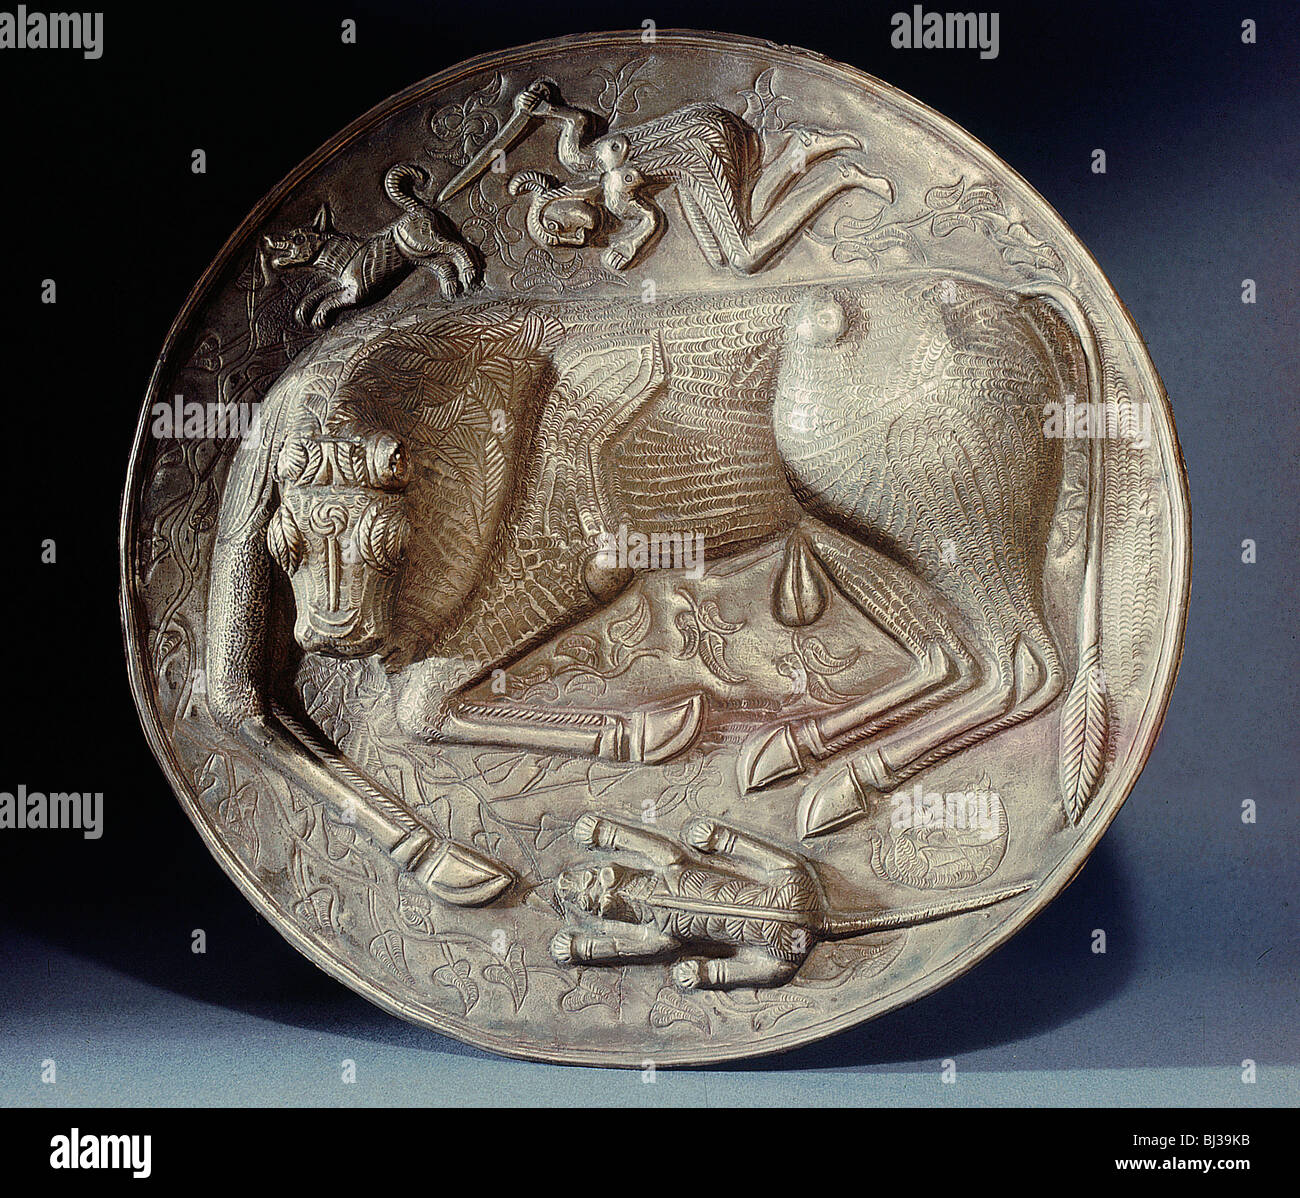 Base of the Gundestrup cauldron, 2nd or 1st century BC. Artist: Werner Forman - Stock Image